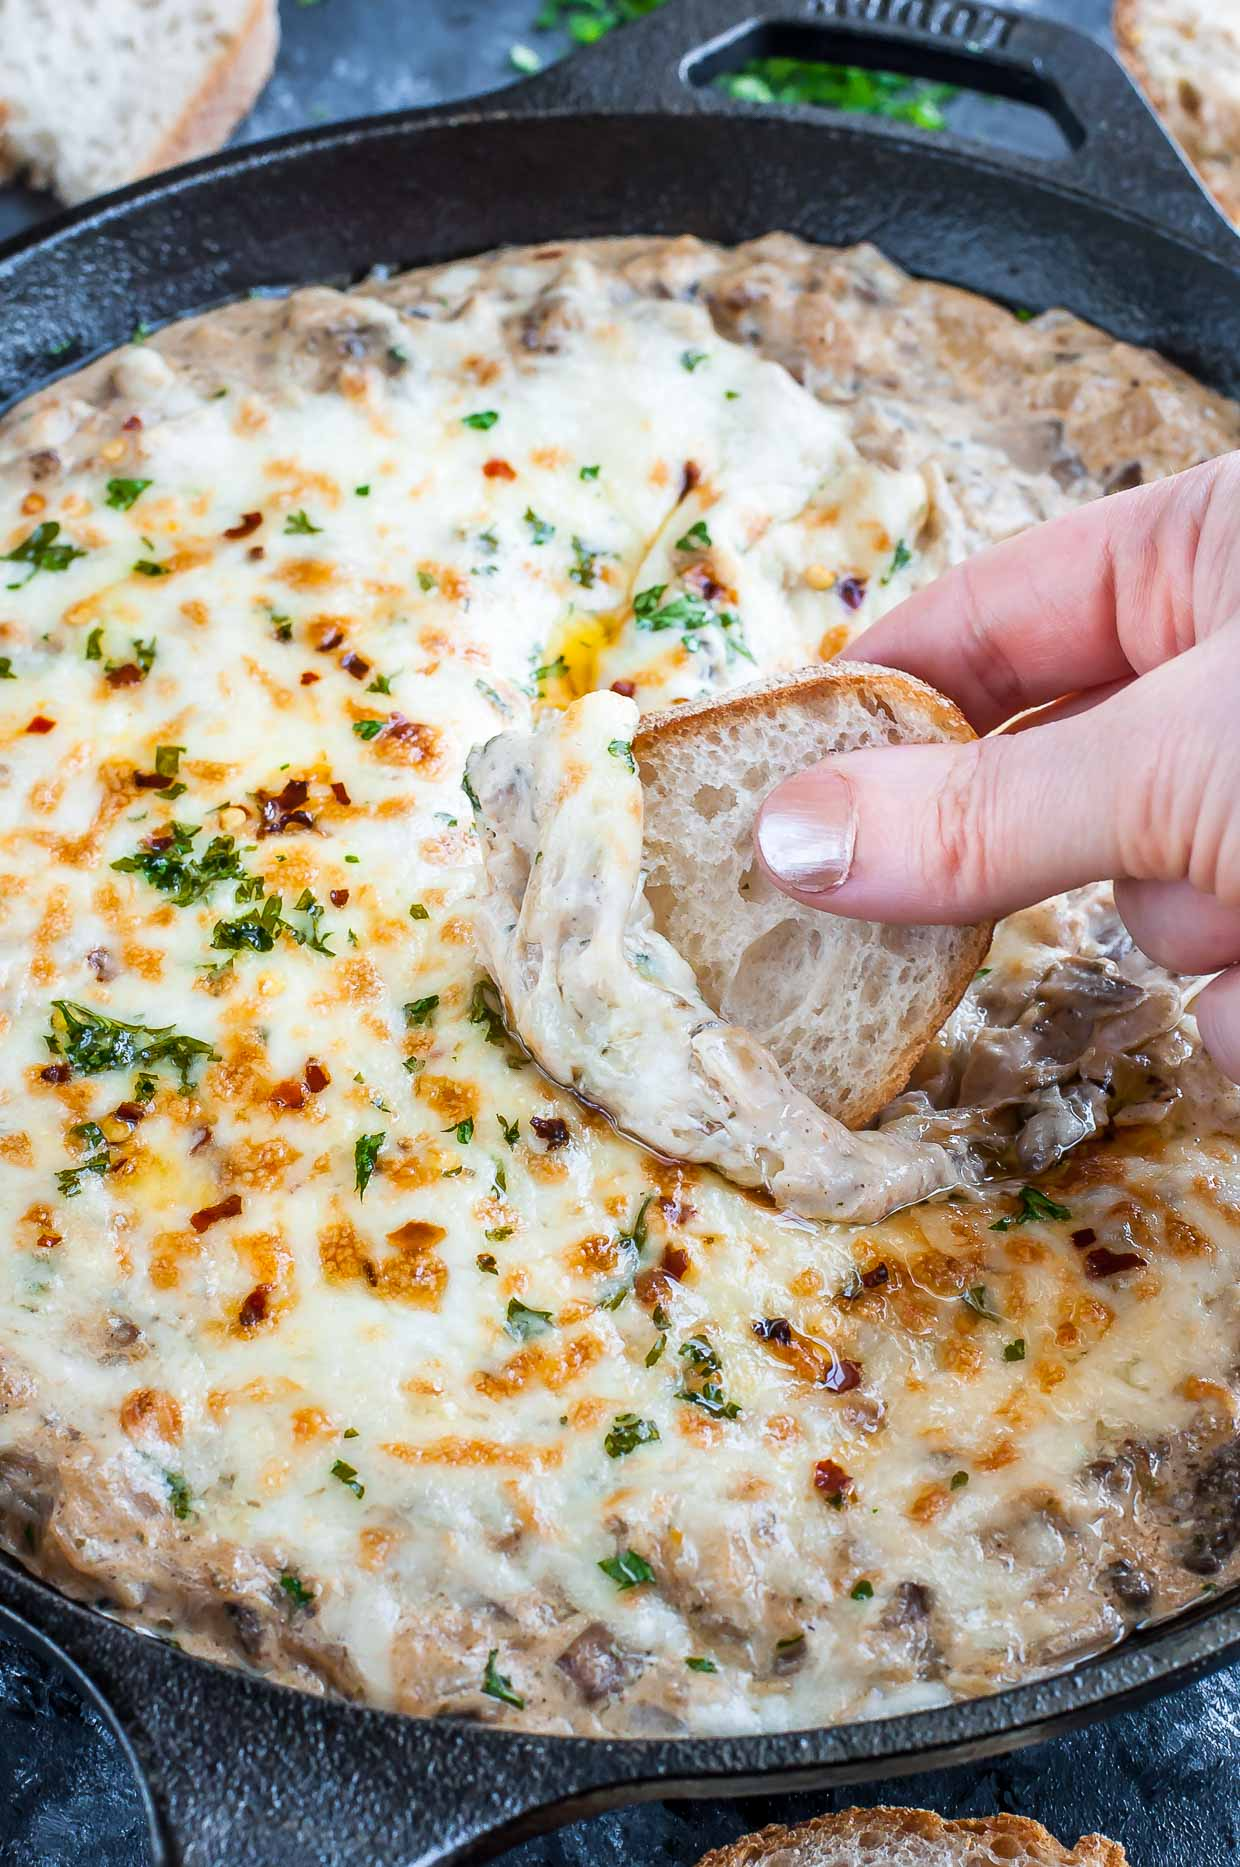 Fancy without the fuss, this piping hot caramelized onion mushroom dip is a total hit at parties! Skip the cheese board and pair your favorite wine with a fresh baguette and this deliciously cheesy dip!